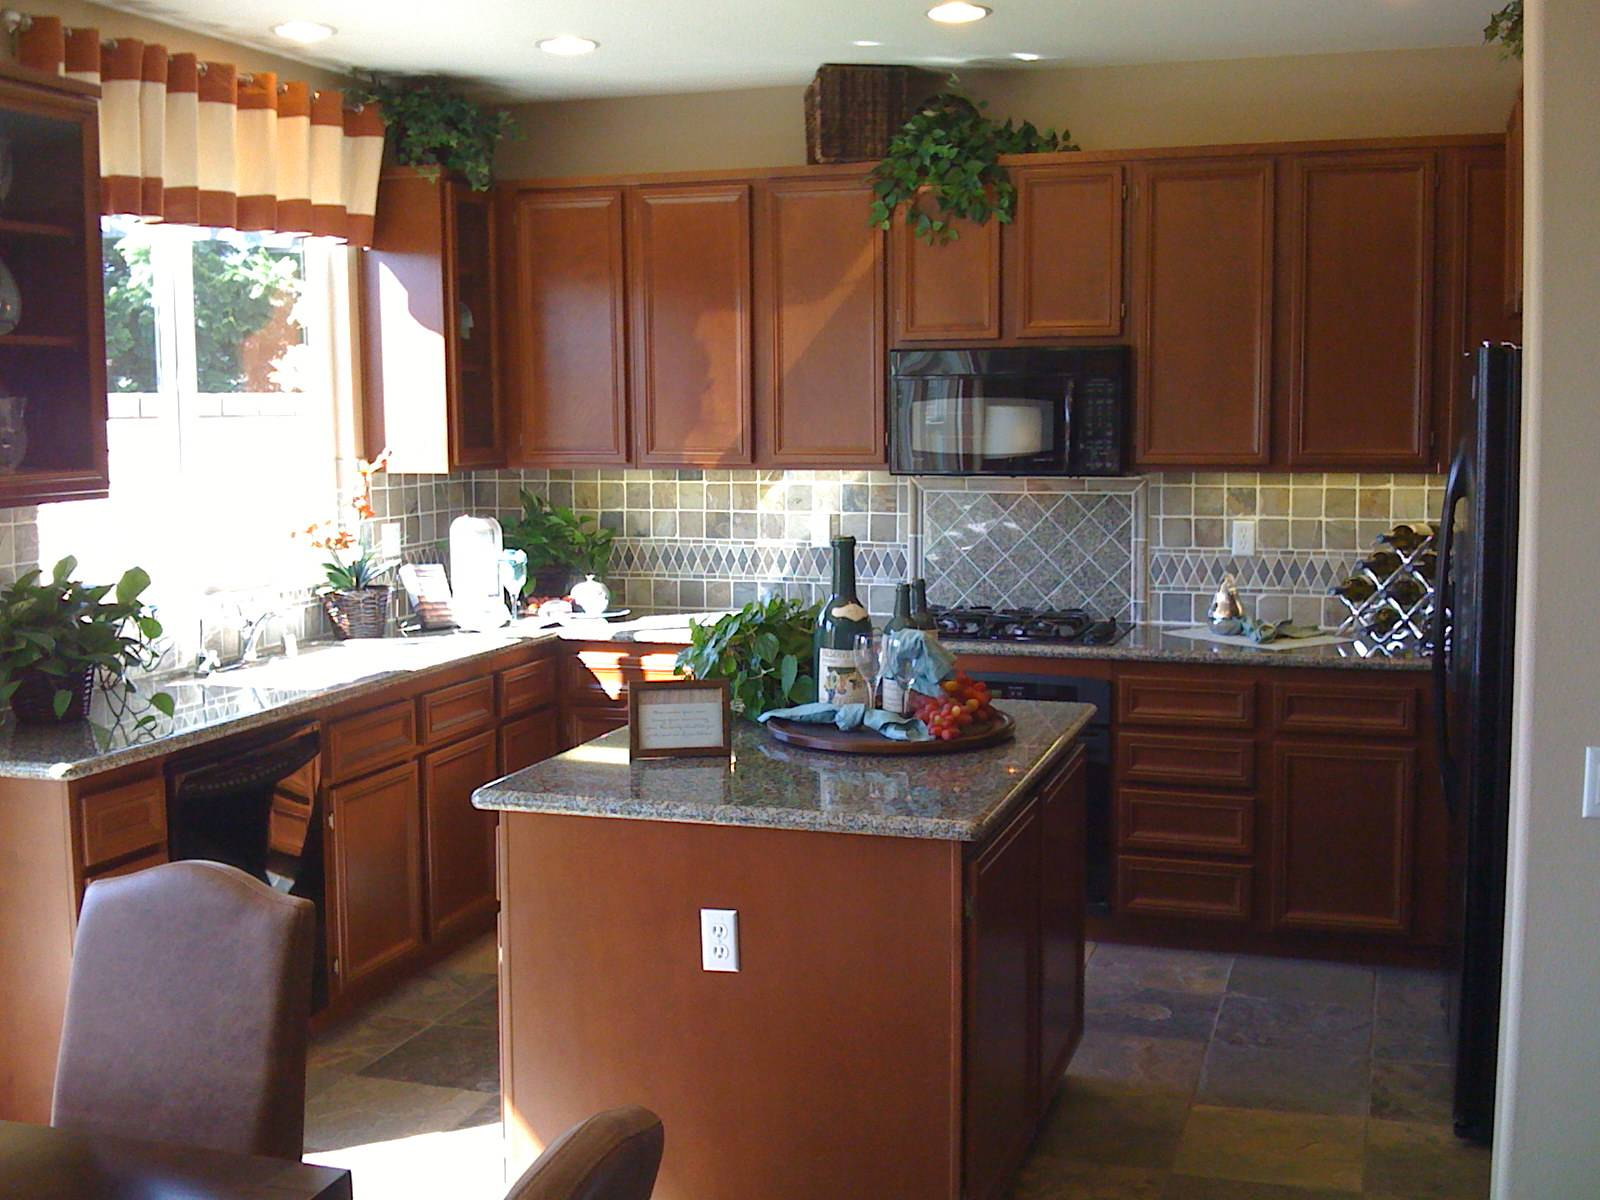 Model Kitchen auto detailing home staging brainer sellers - kaf mobile homes